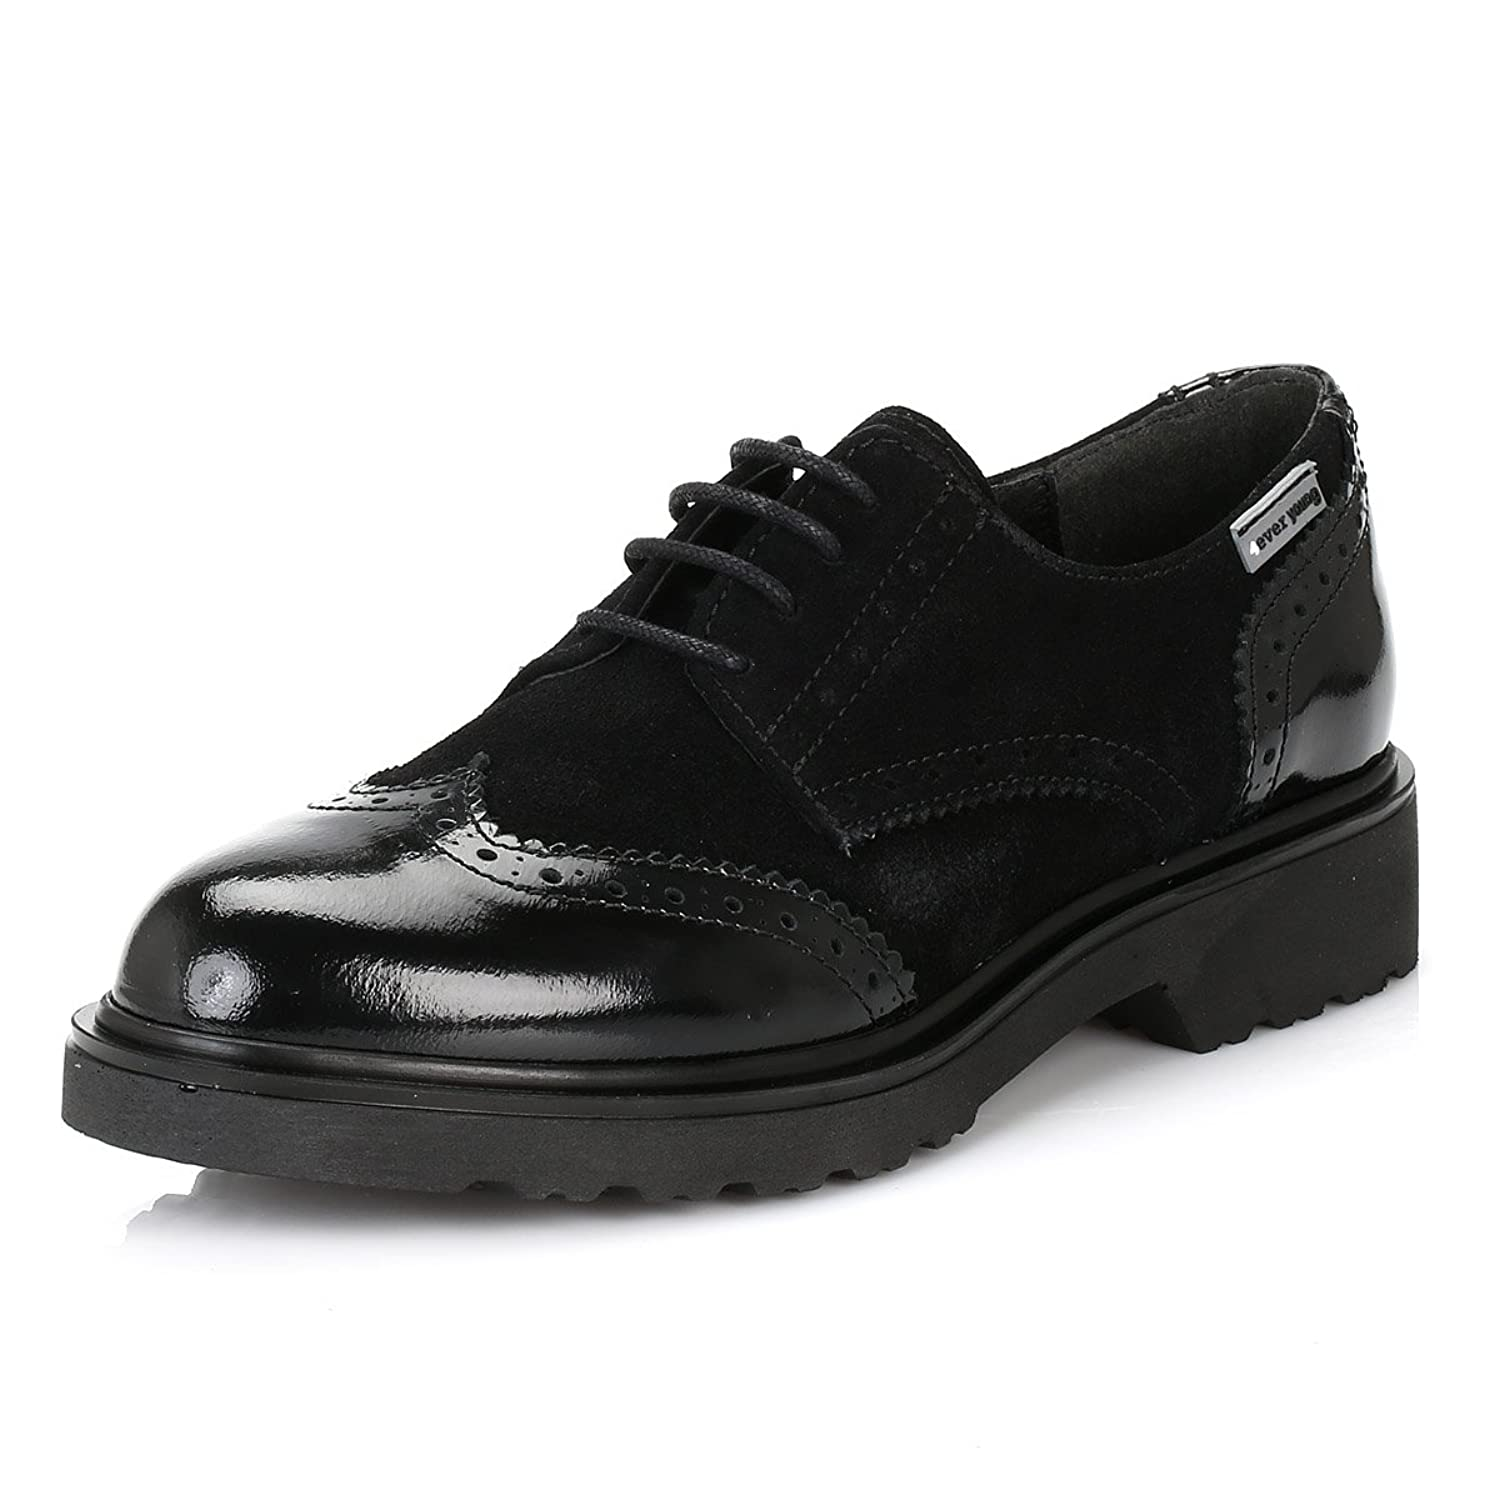 4ever young Womens Black Yale Patent Leather Brogues